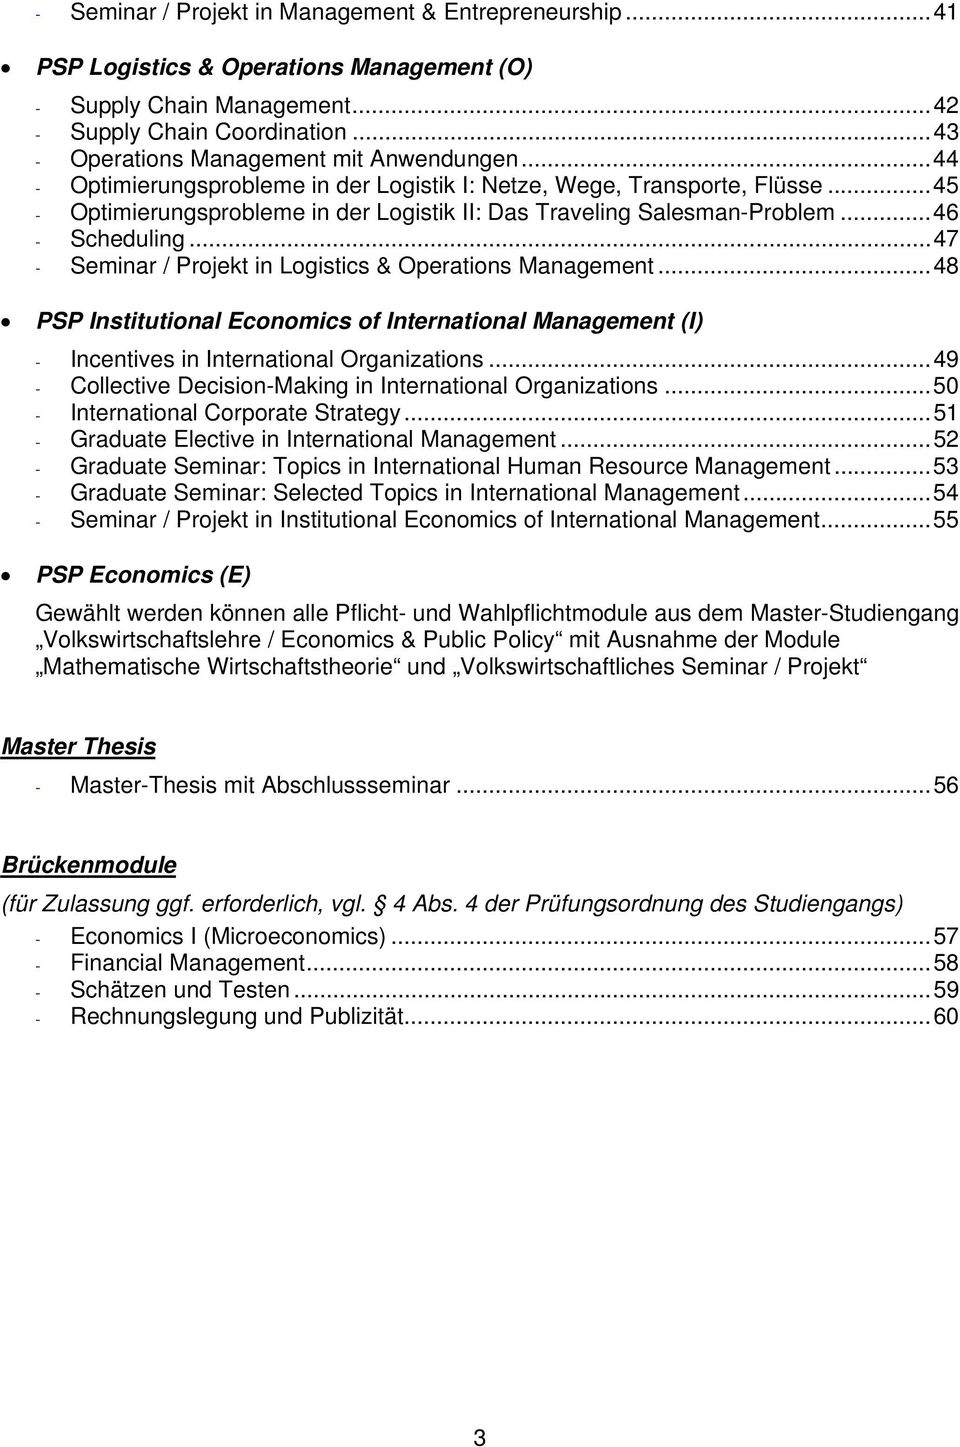 .. 45 - Optimierungsprobleme in der Logistik II: Das Traveling Salesman-Problem... 46 - Scheduling... 47 - Seminar / Projekt in Logistics & Operations Management.